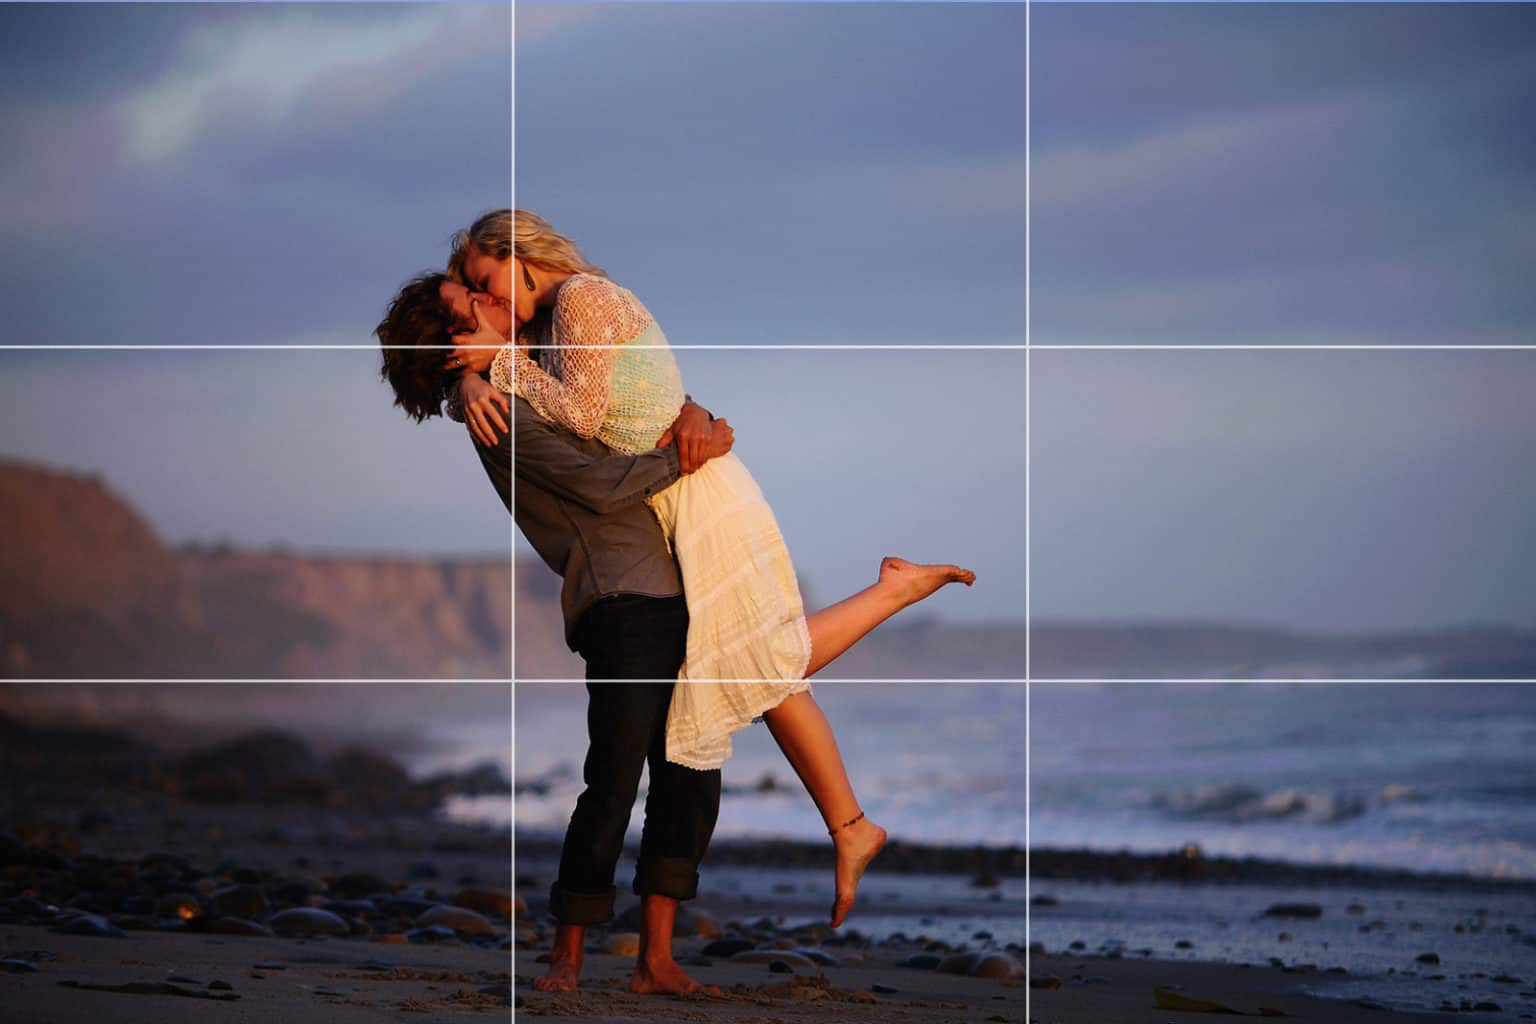 Rule of thirds couple